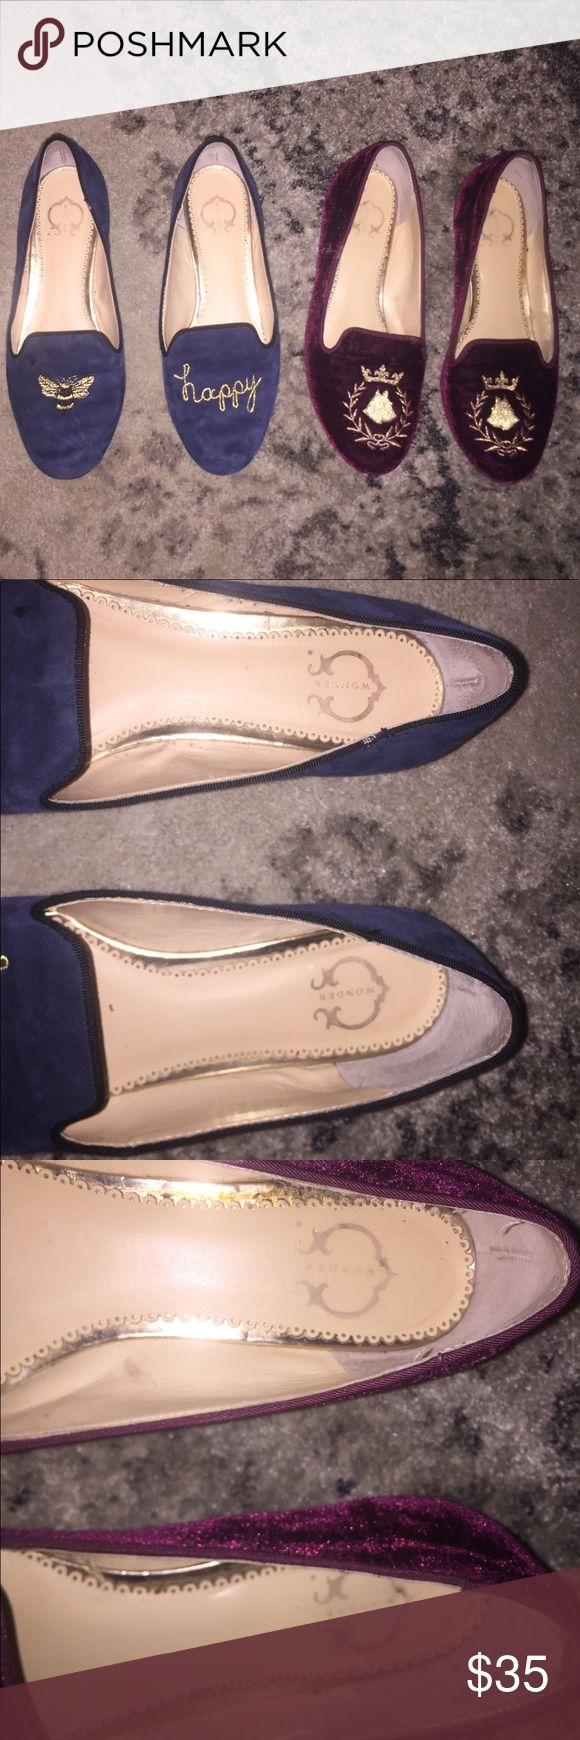 2 pairs of C Wonder Shoes If you love Tory Burch...you may know C Wonder.  This was the brand her Ex husband created. His  products were made out of her same factory. Including 2 pairs of flats. Great shoes.  Gently worn and overall great condition. Tagging these as Tory Burch for name recognition only. Tory Burch Shoes Flats & Loafers